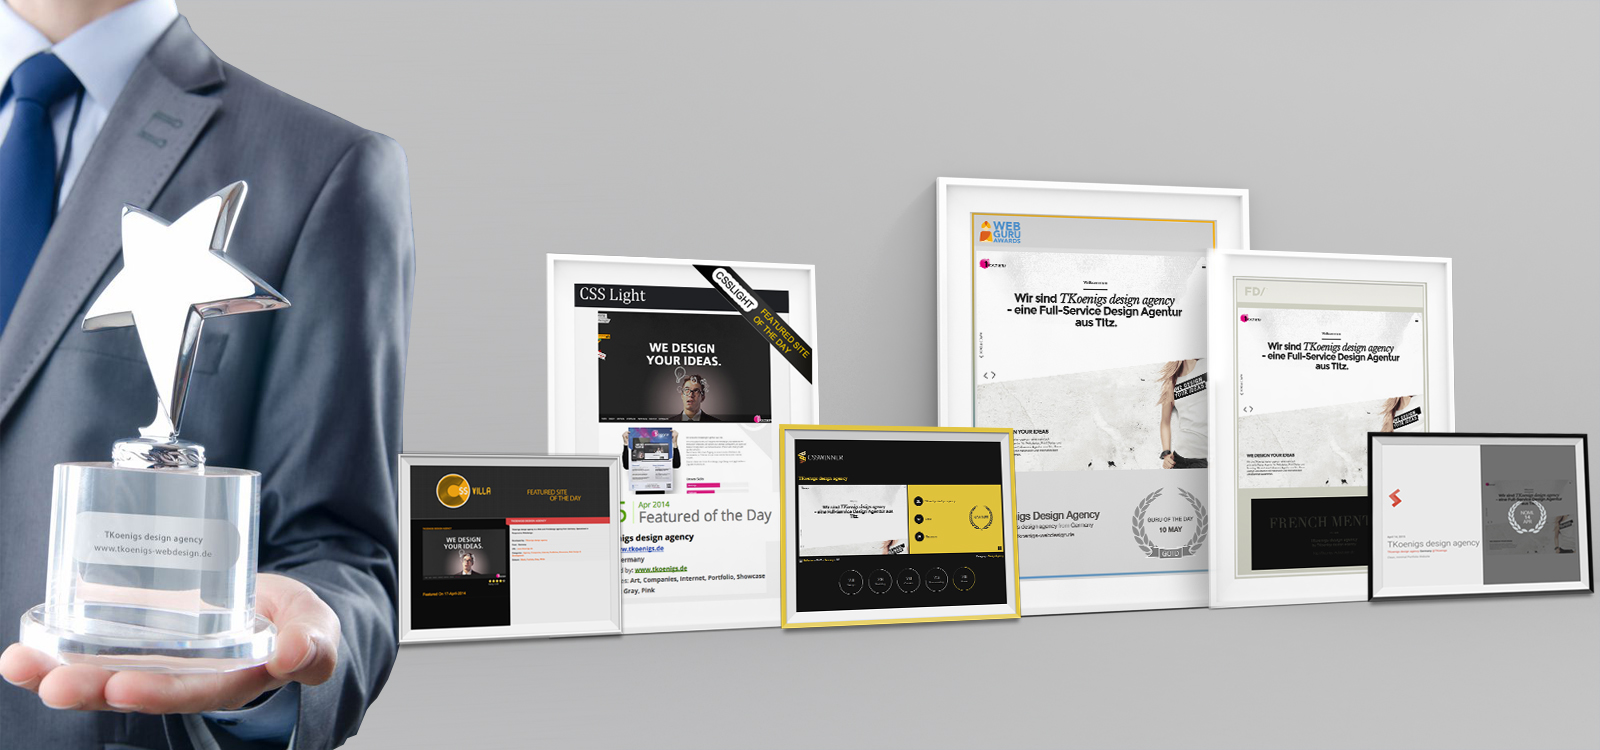 TKoenigs design agency - Webseite des Tages